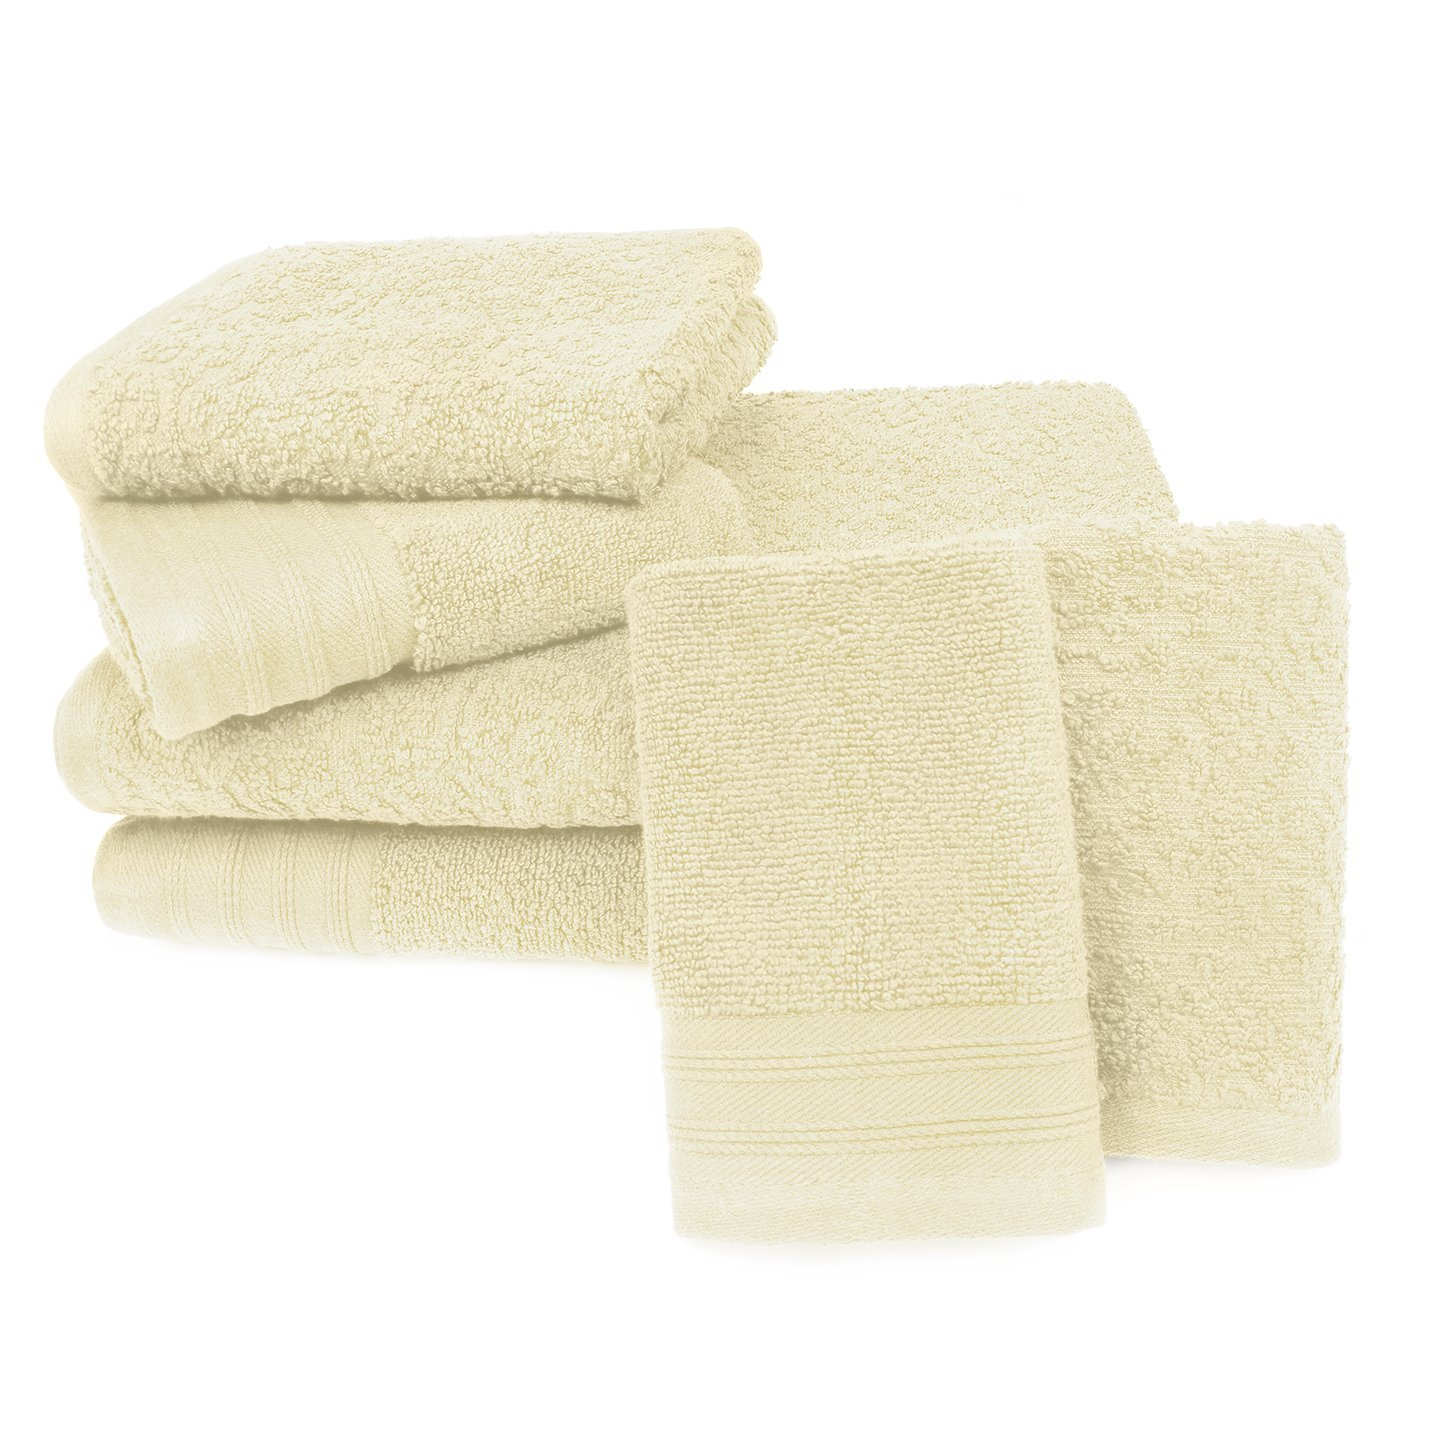 Zero Twist Jacquard 6-Piece Bath Towel Set Ivory by Overstock